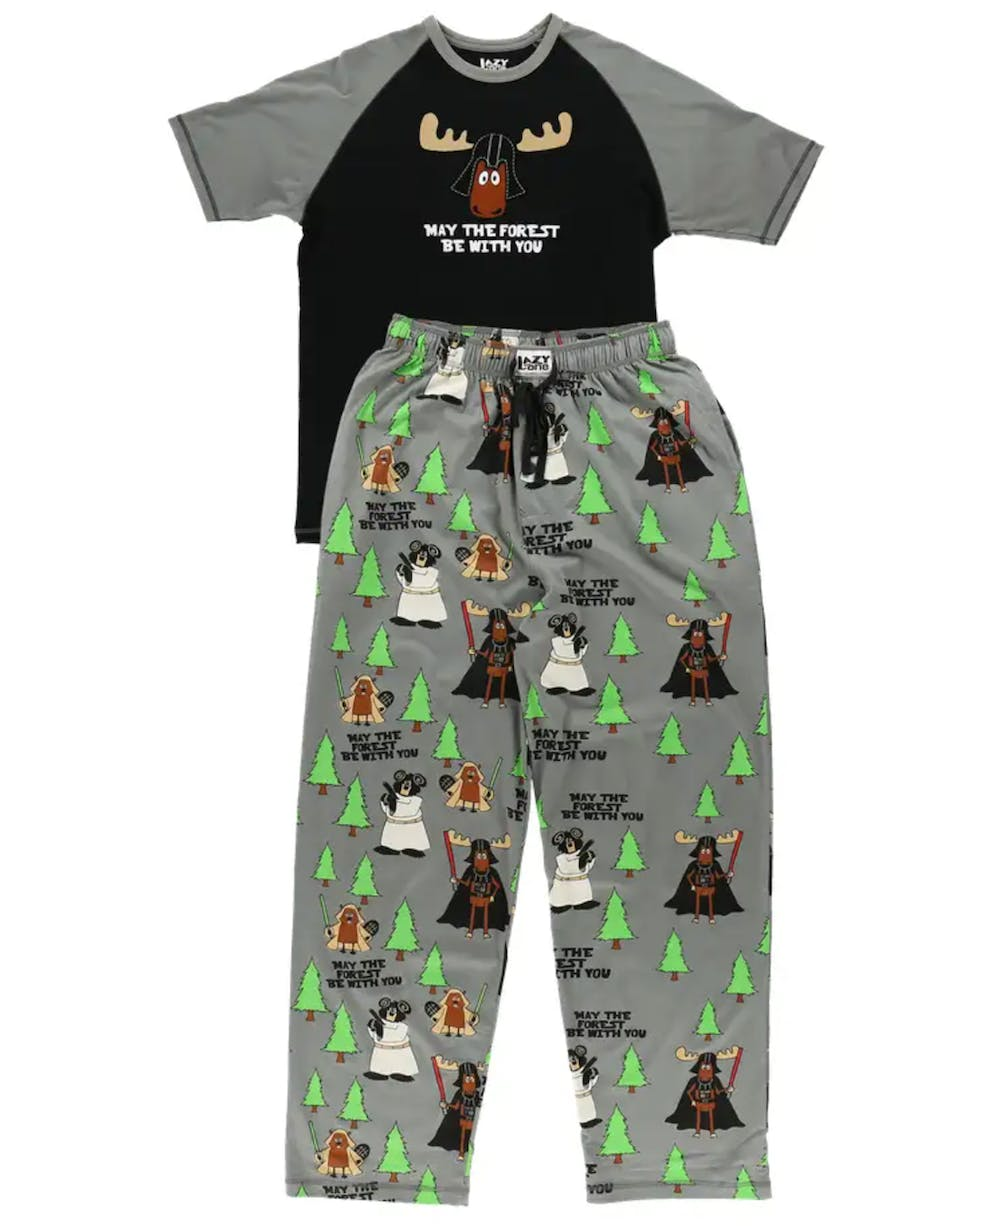 may the forest be with you men's pajama shirt and pants